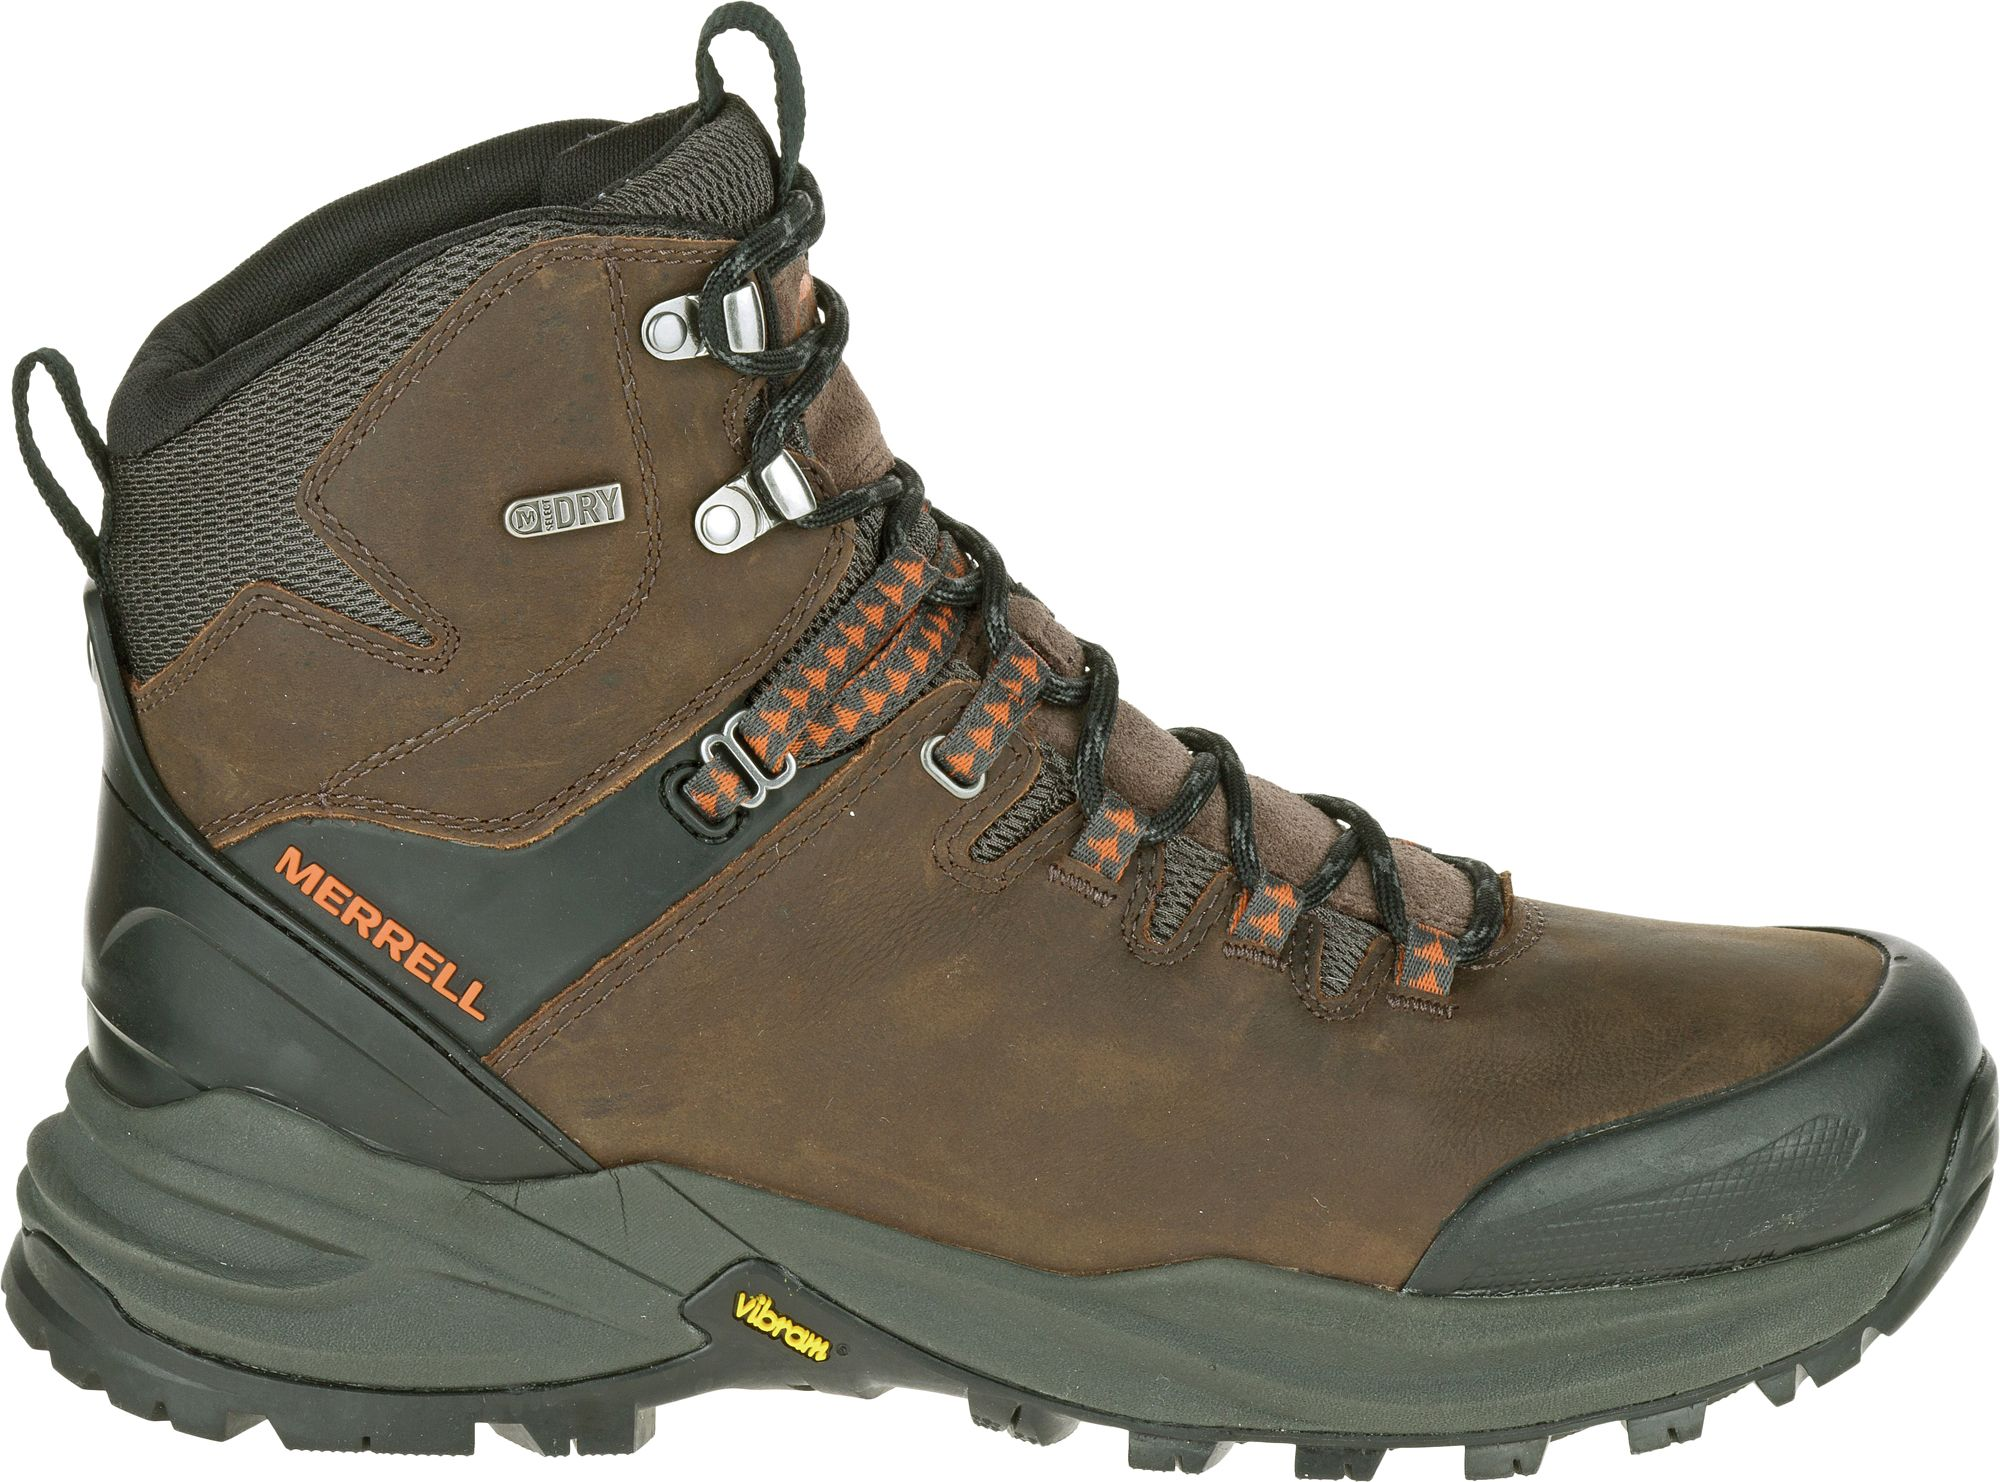 Merrell Men's Phaserbound Waterproof Hiking Boots| DICK'S Sporting ...